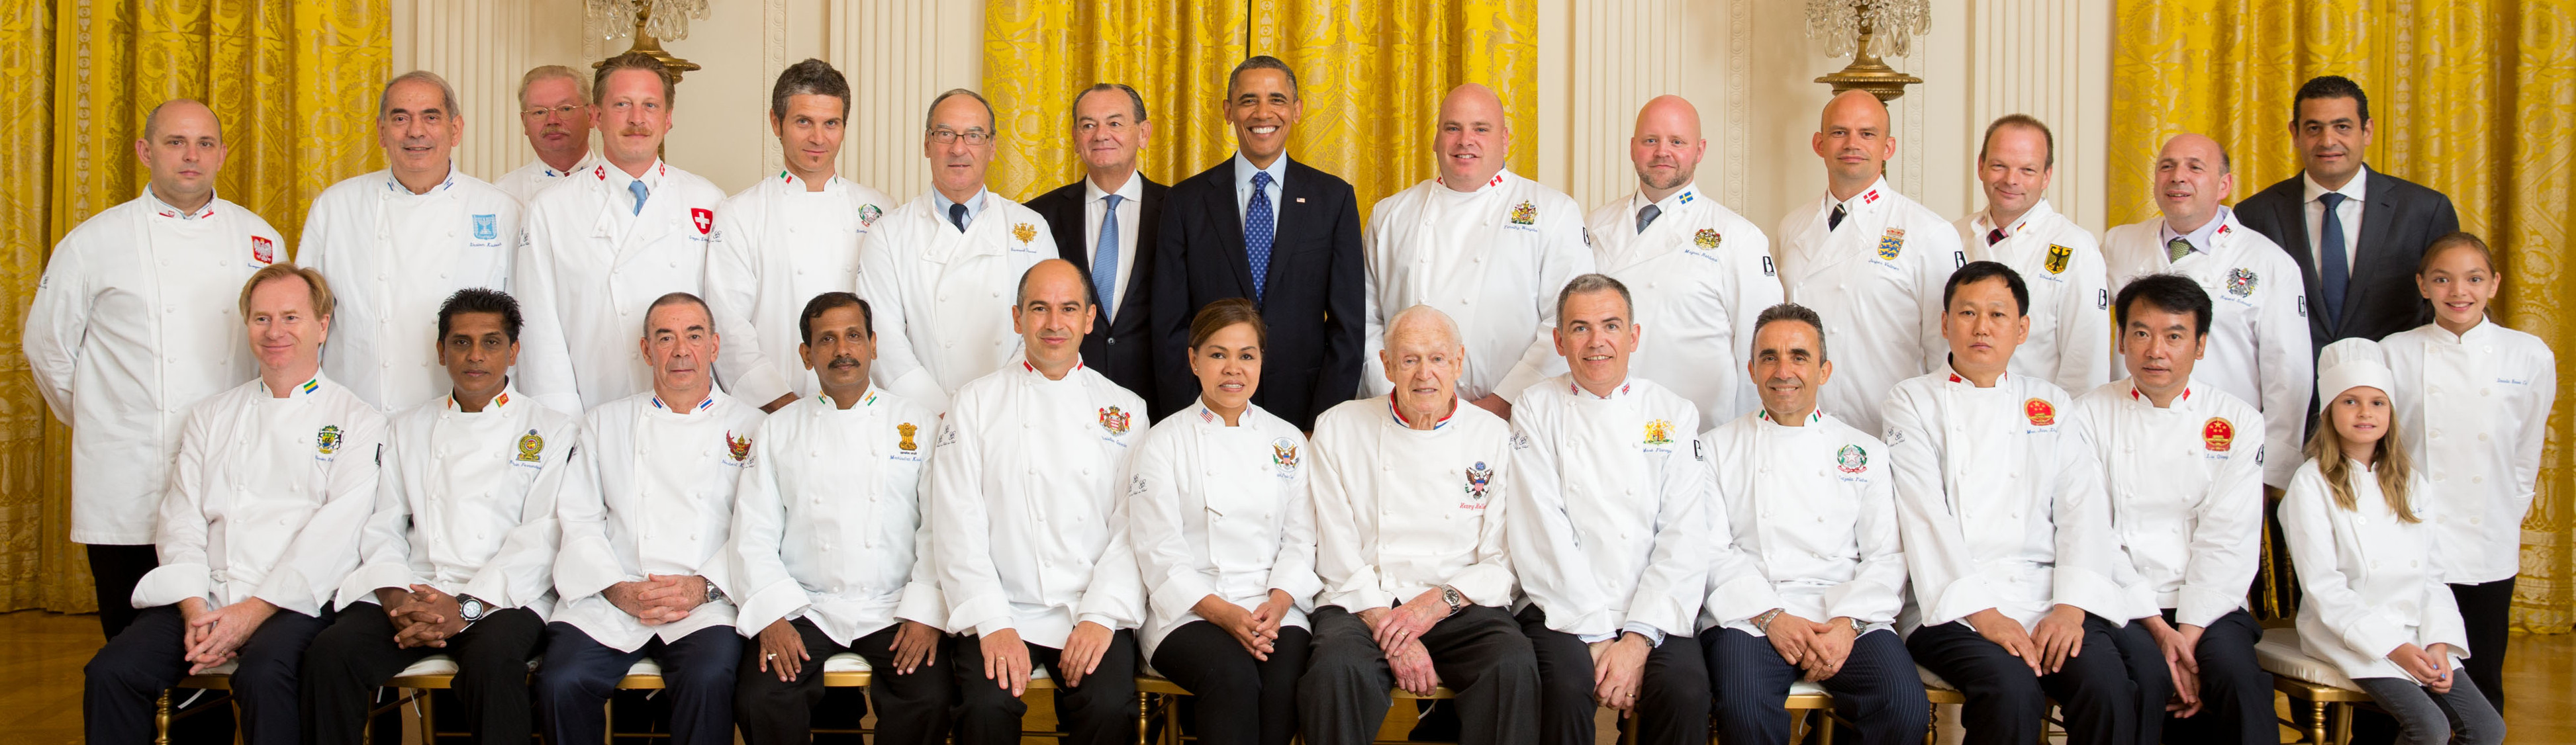 The Club des Chefs des Chefs at the White House in 2013